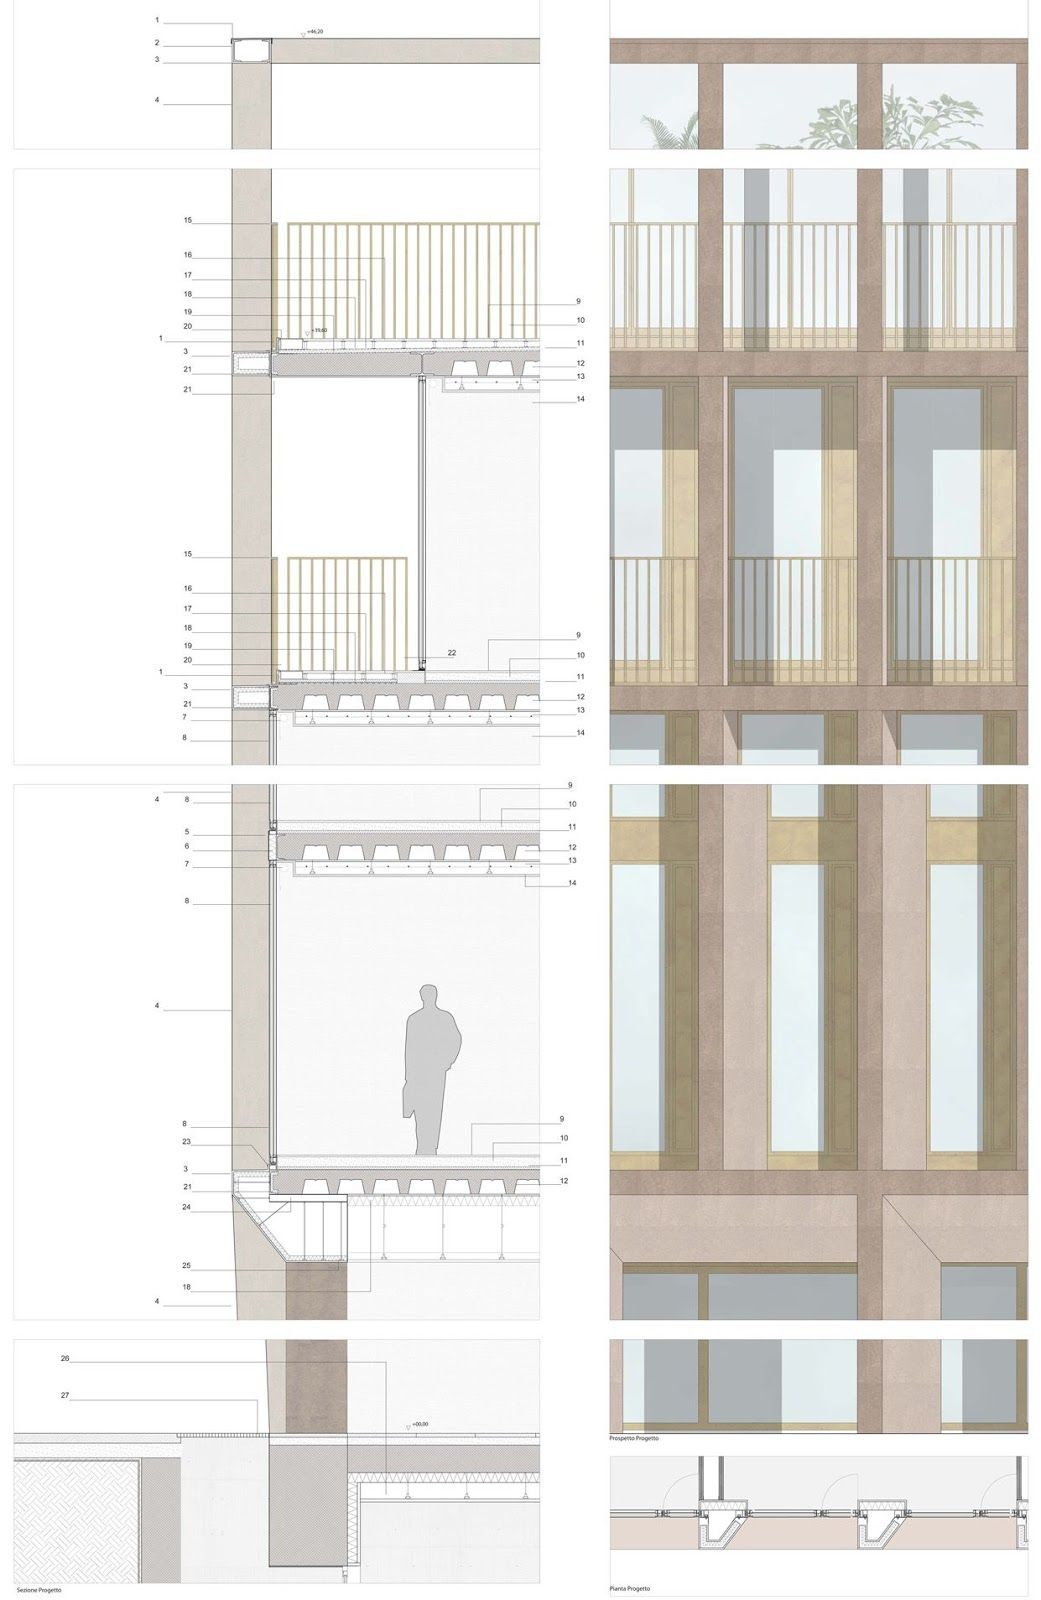 Onsitestudio Architecture drawing, Architectural section